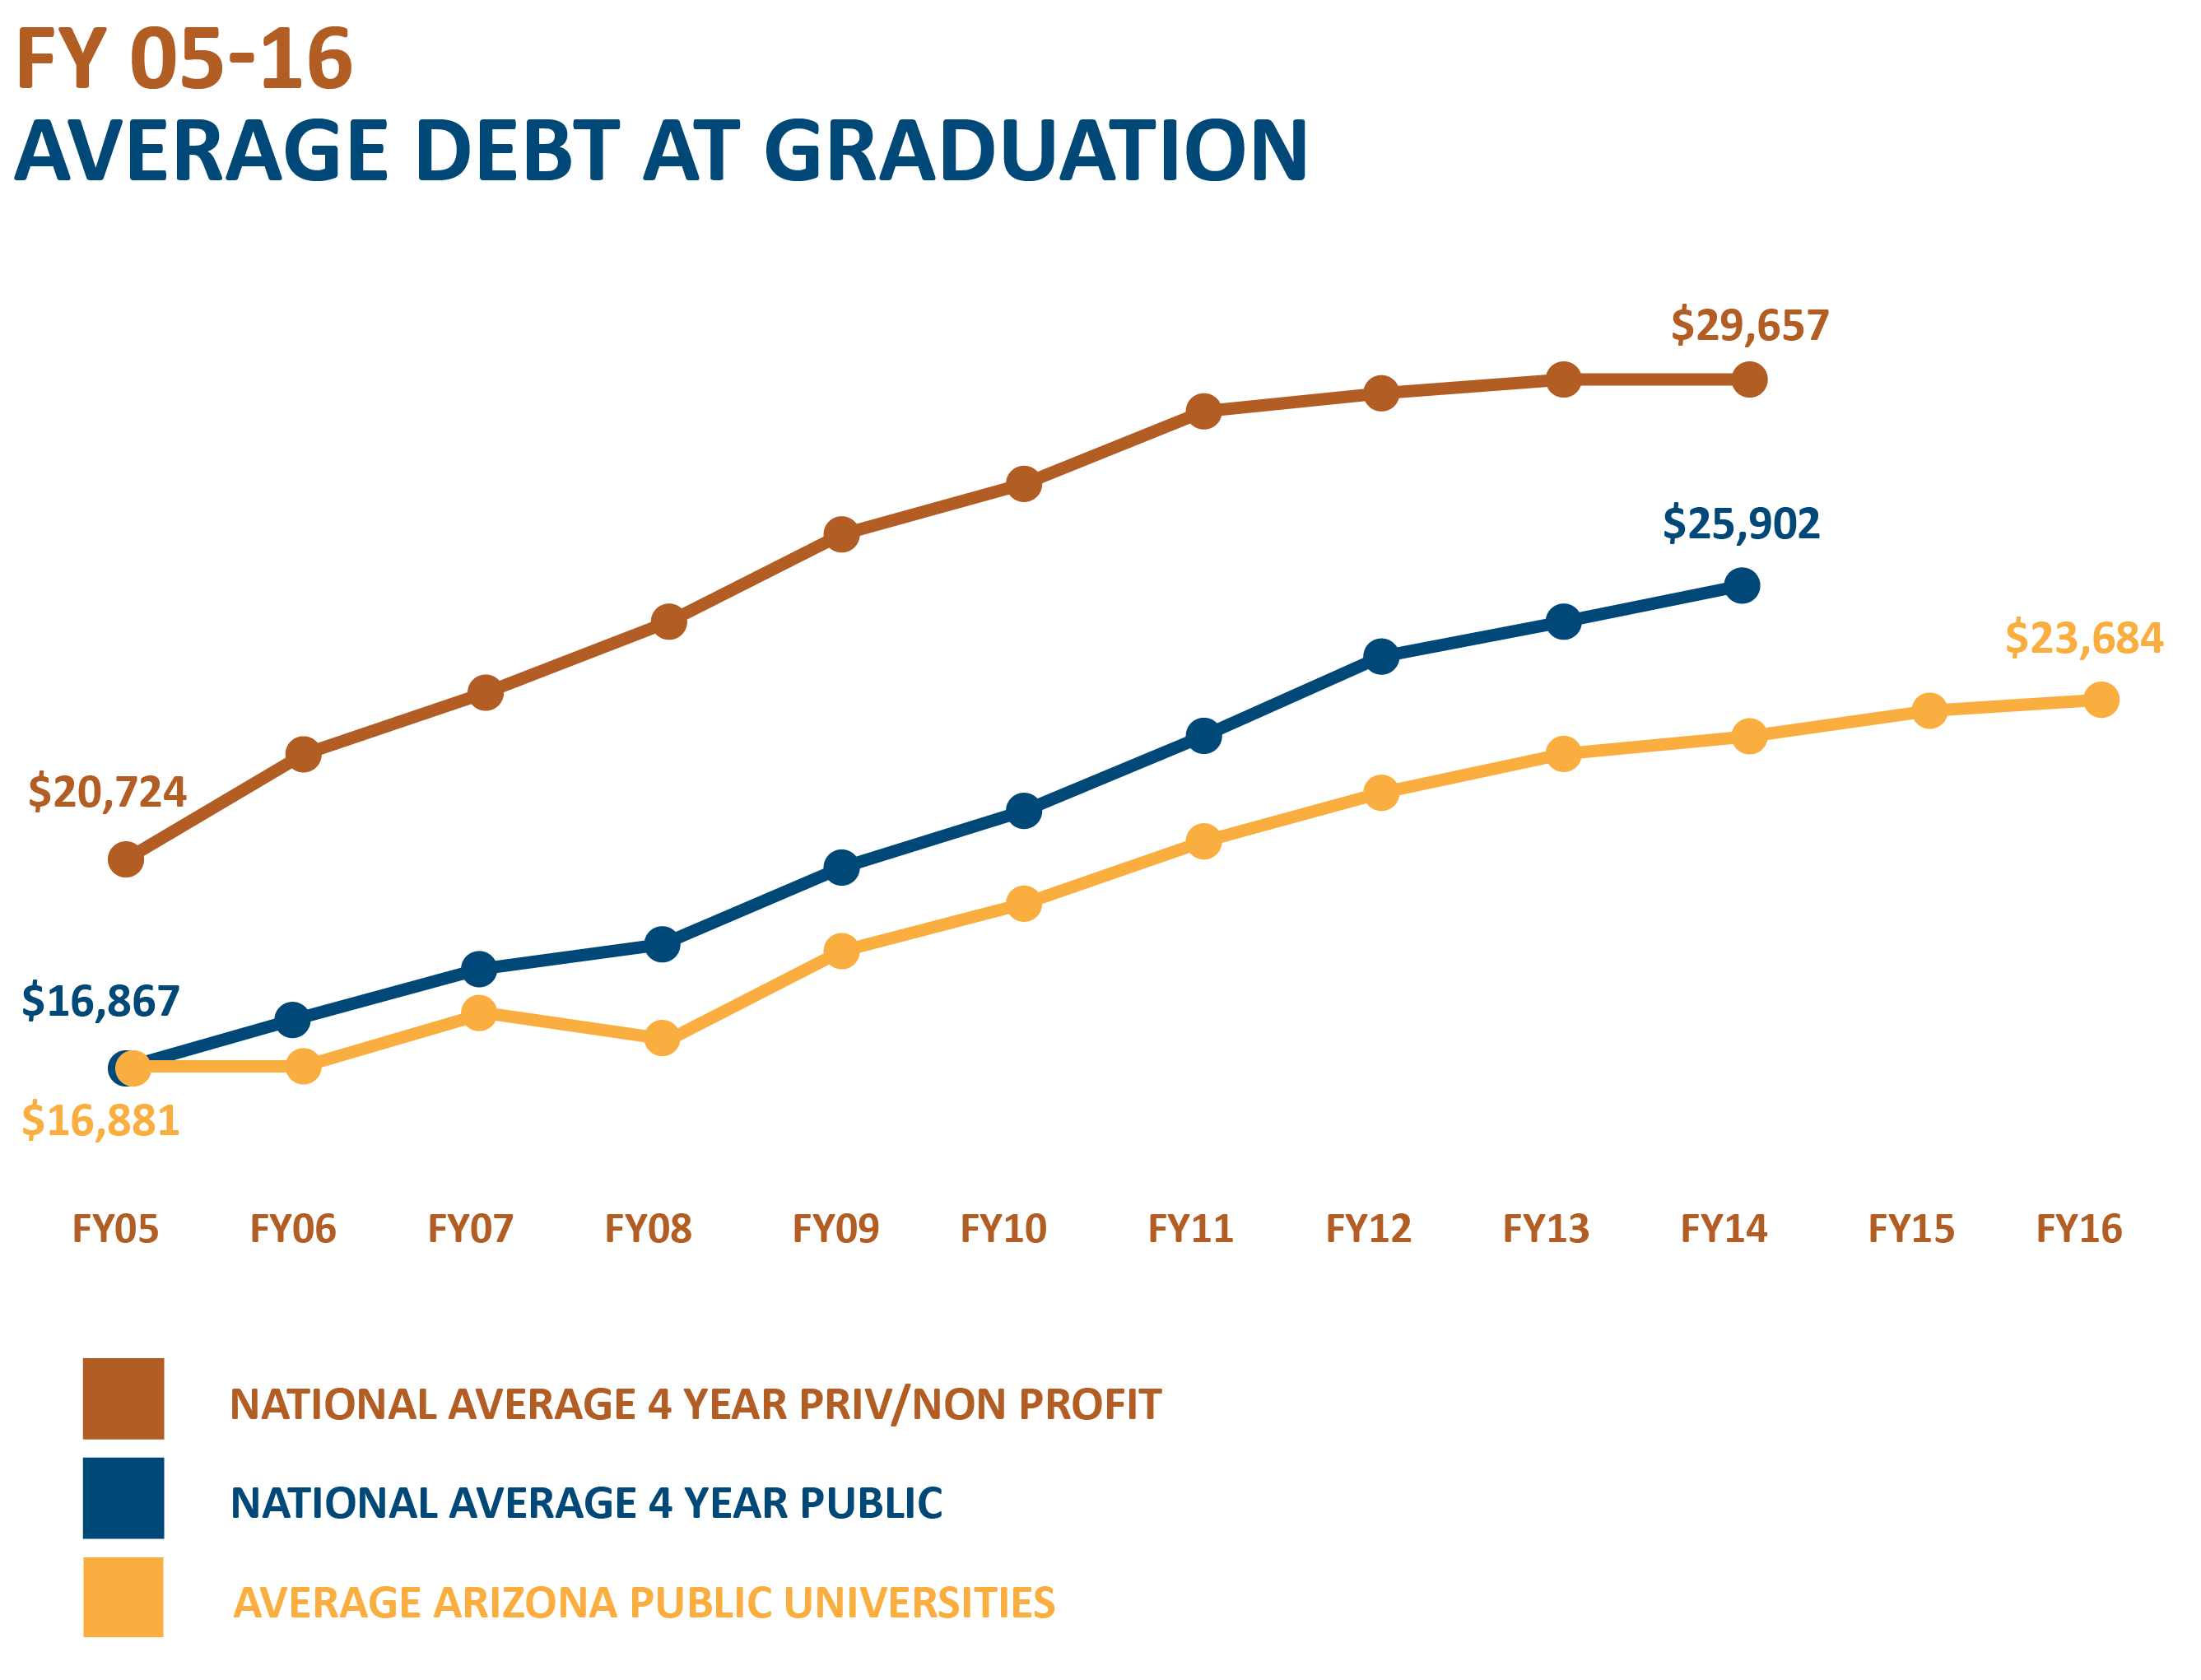 Average Debt